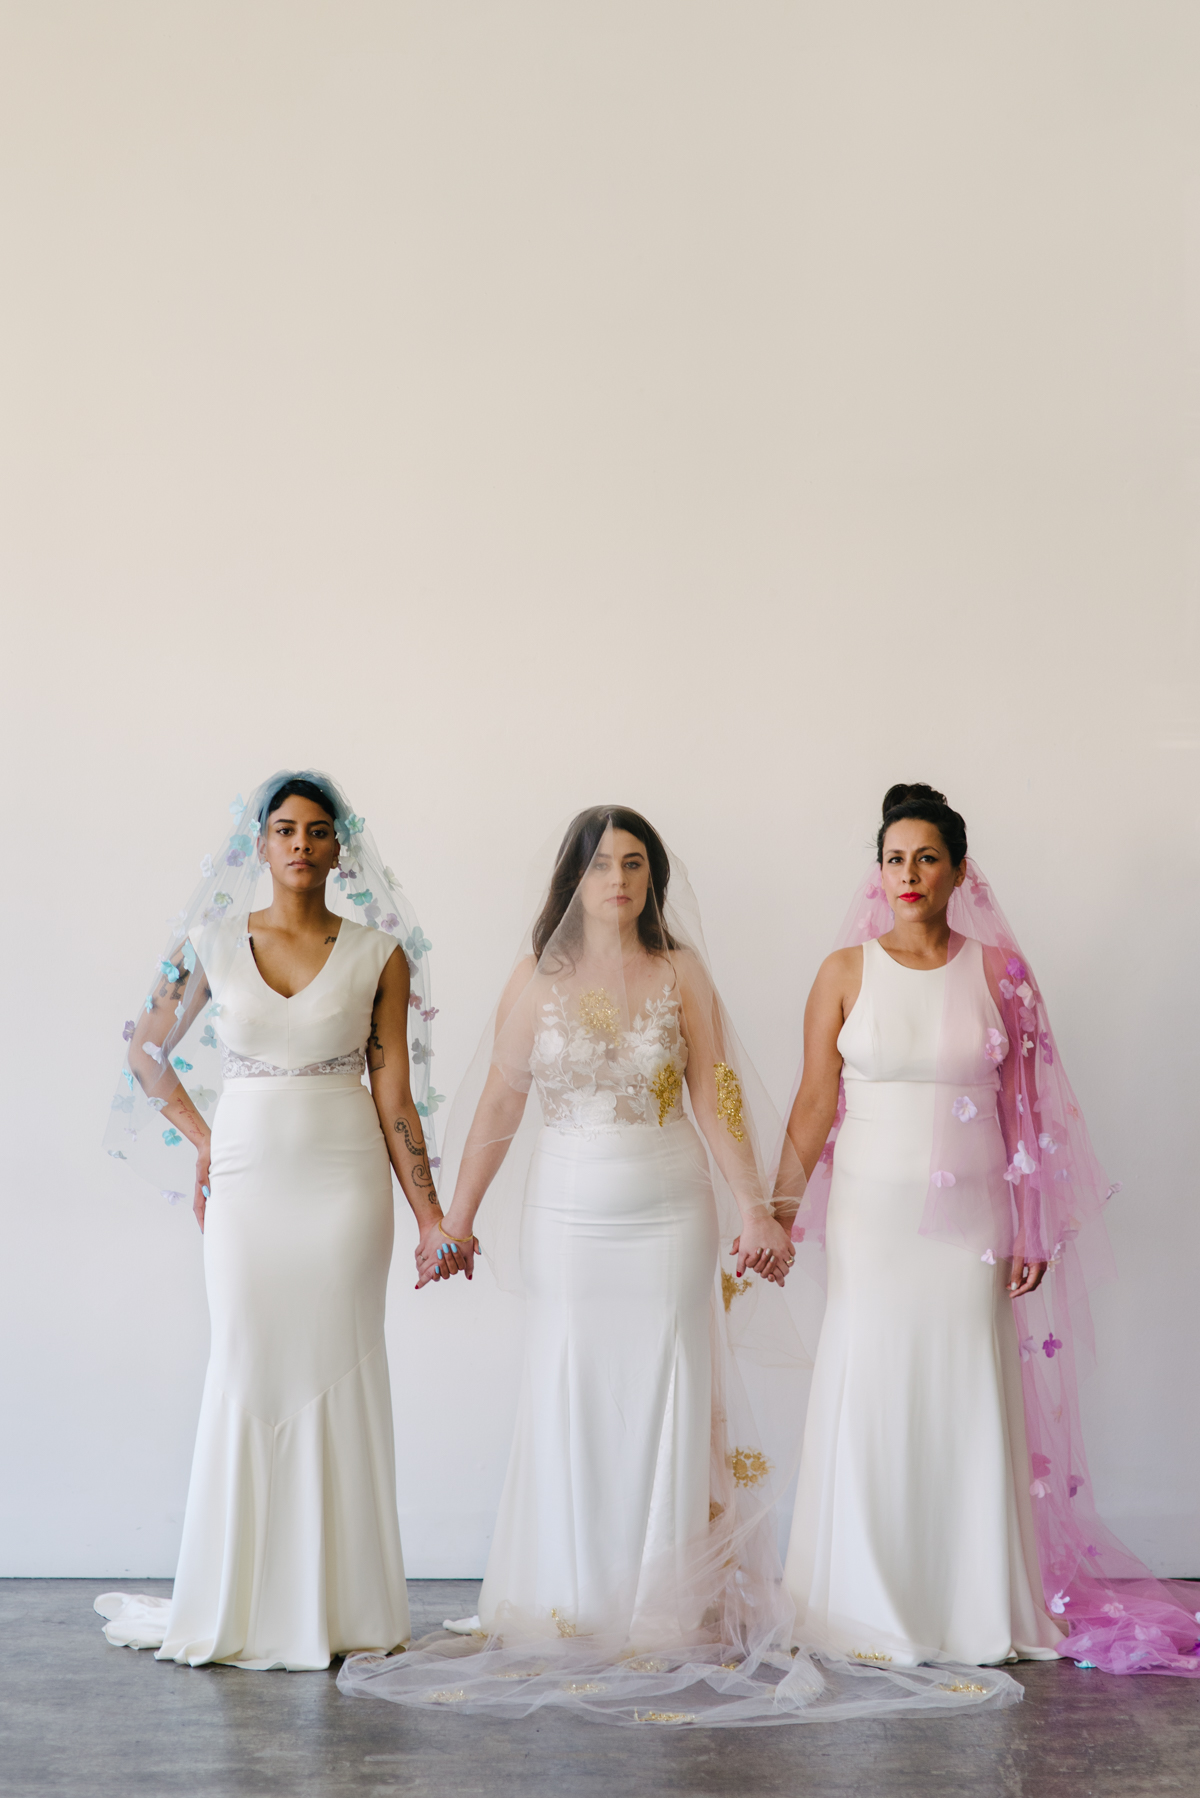 Three women stand side by side holding hands while wearing different color wedding veils